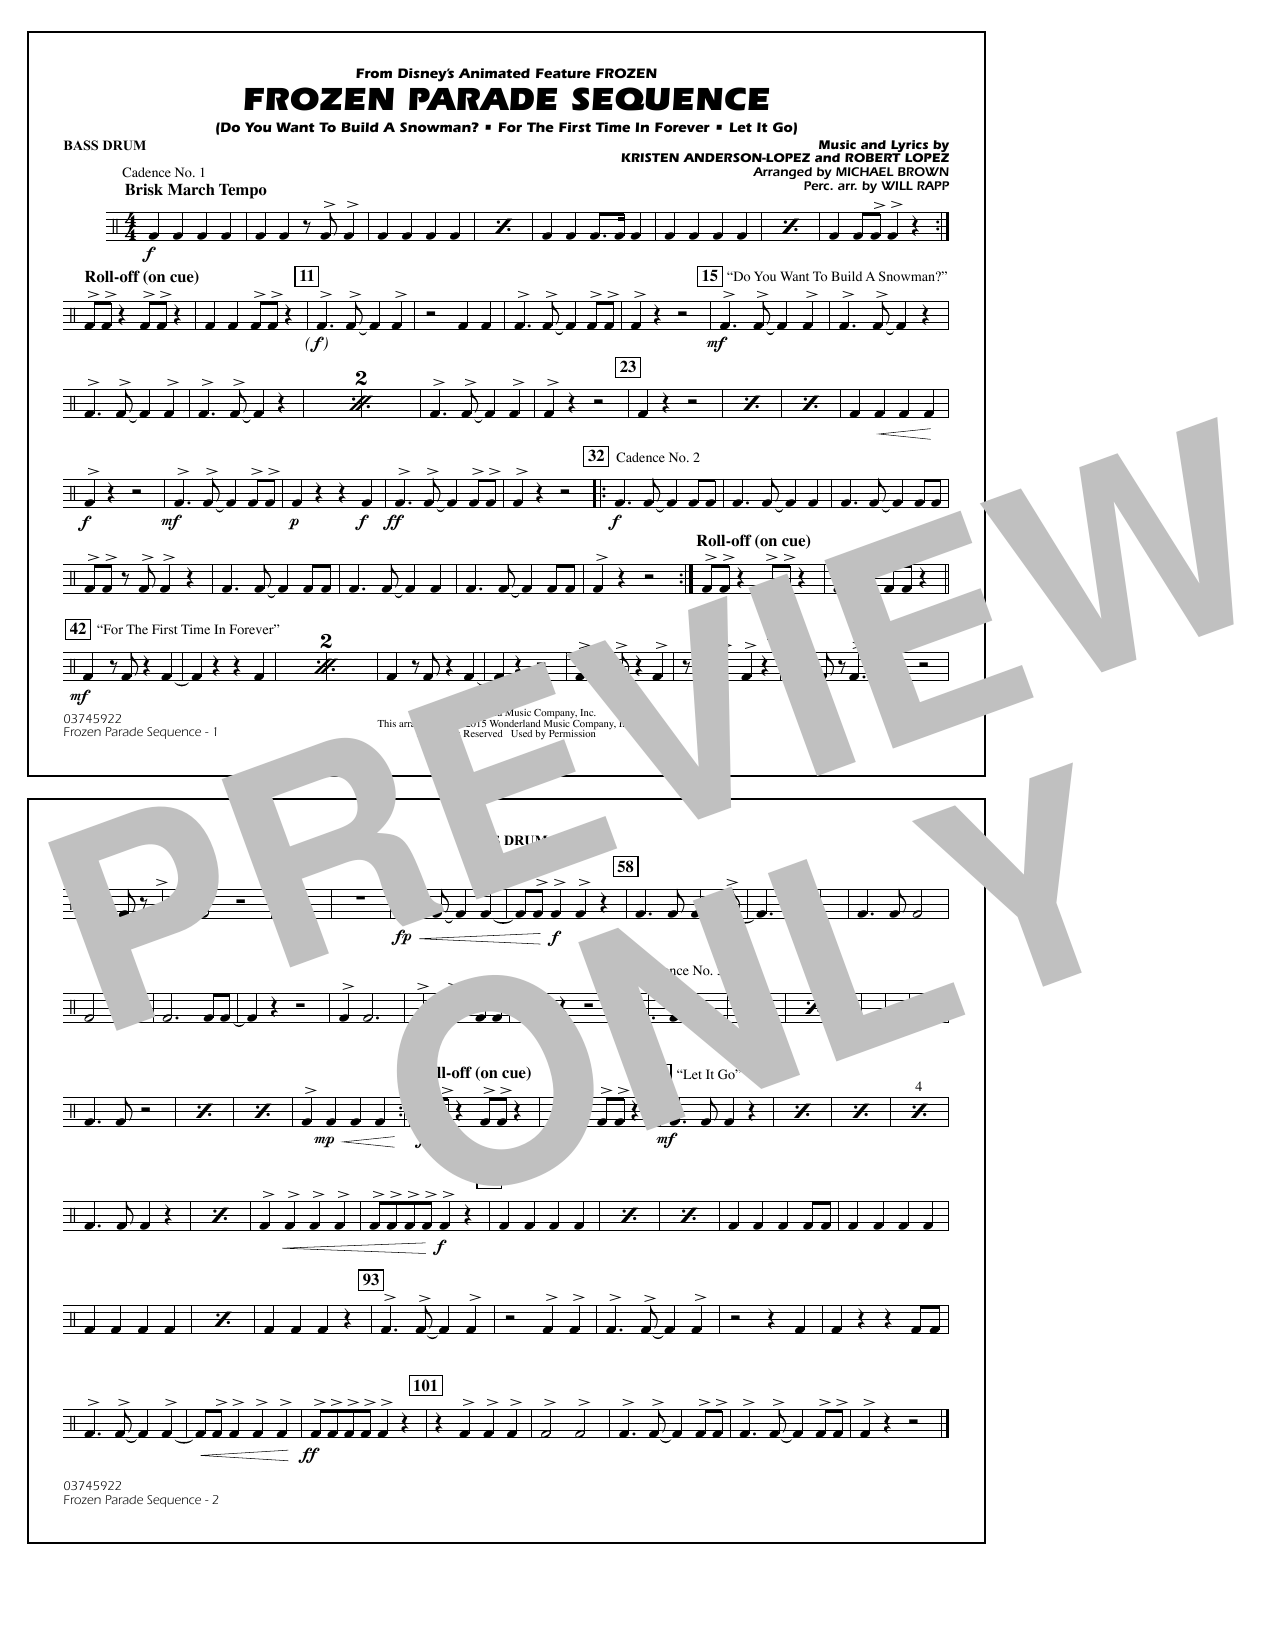 Frozen Parade Sequence - Bass Drum - Sheet Music to Download